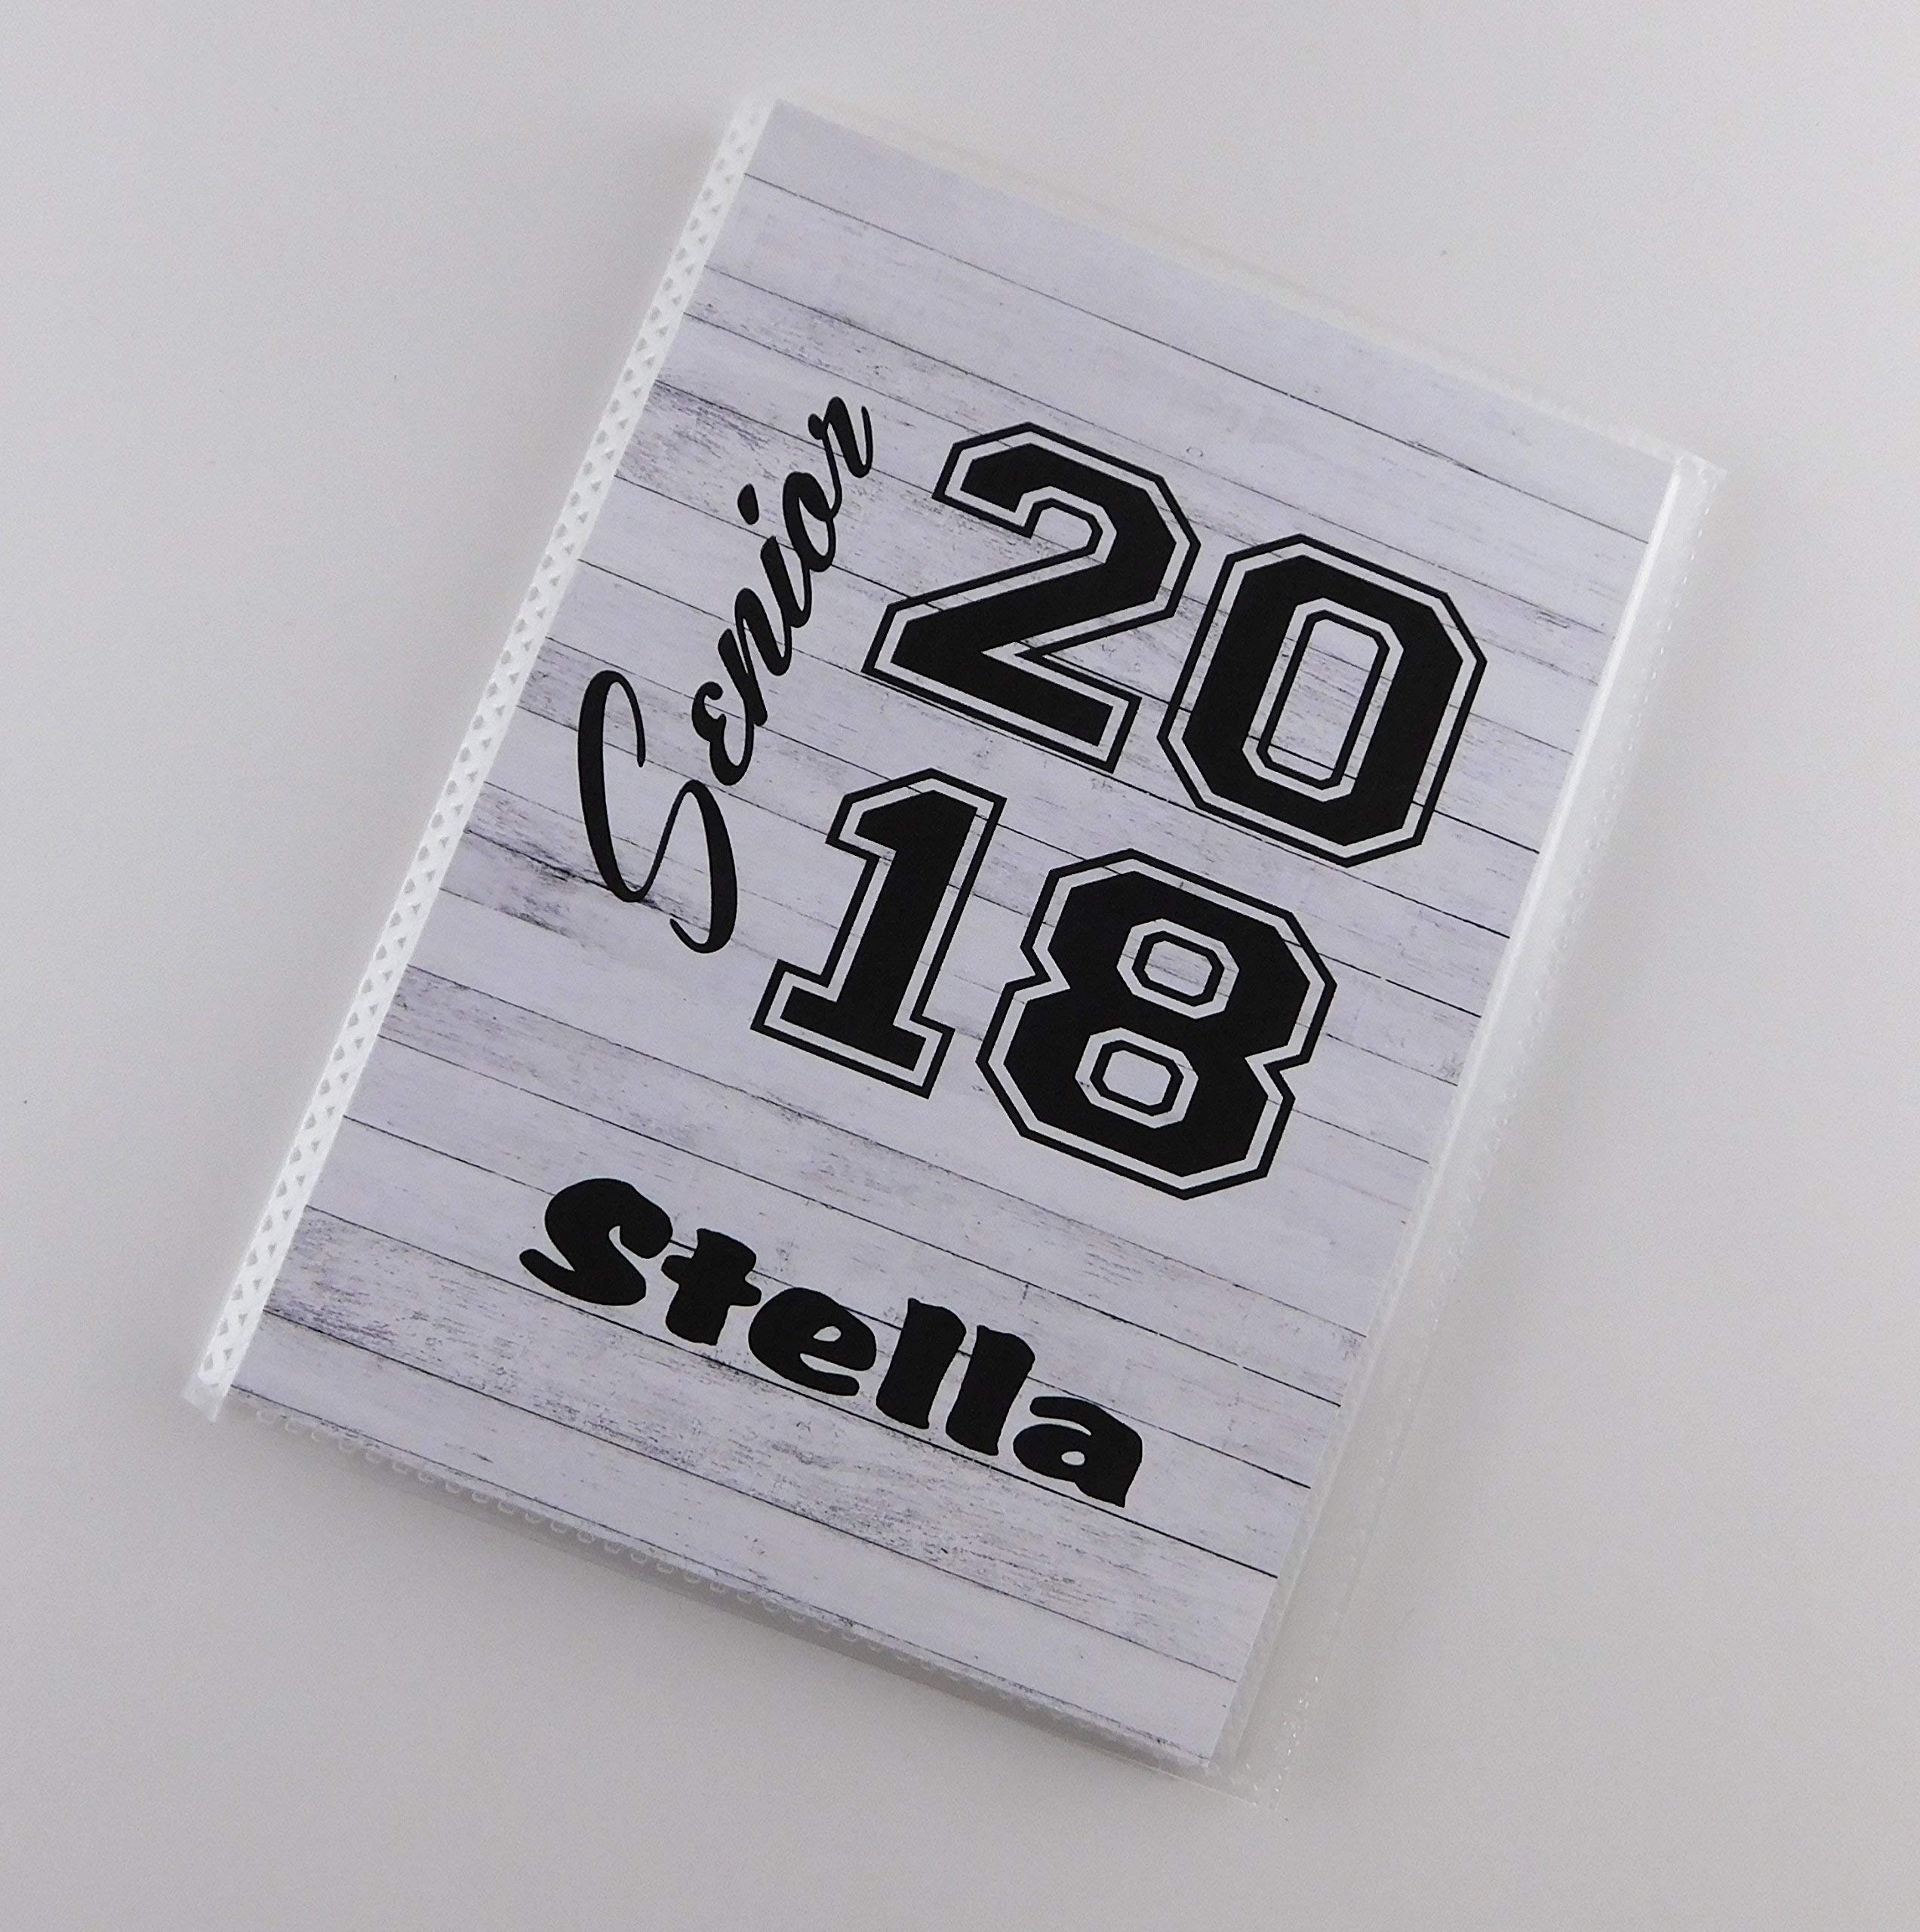 Graduation Gift 2018 2019 IA#880 Senior Photo Album 5x7 or 4x6 Pictures High School Class Personalized with Name Parent Brag Book NOT REAL WOOD